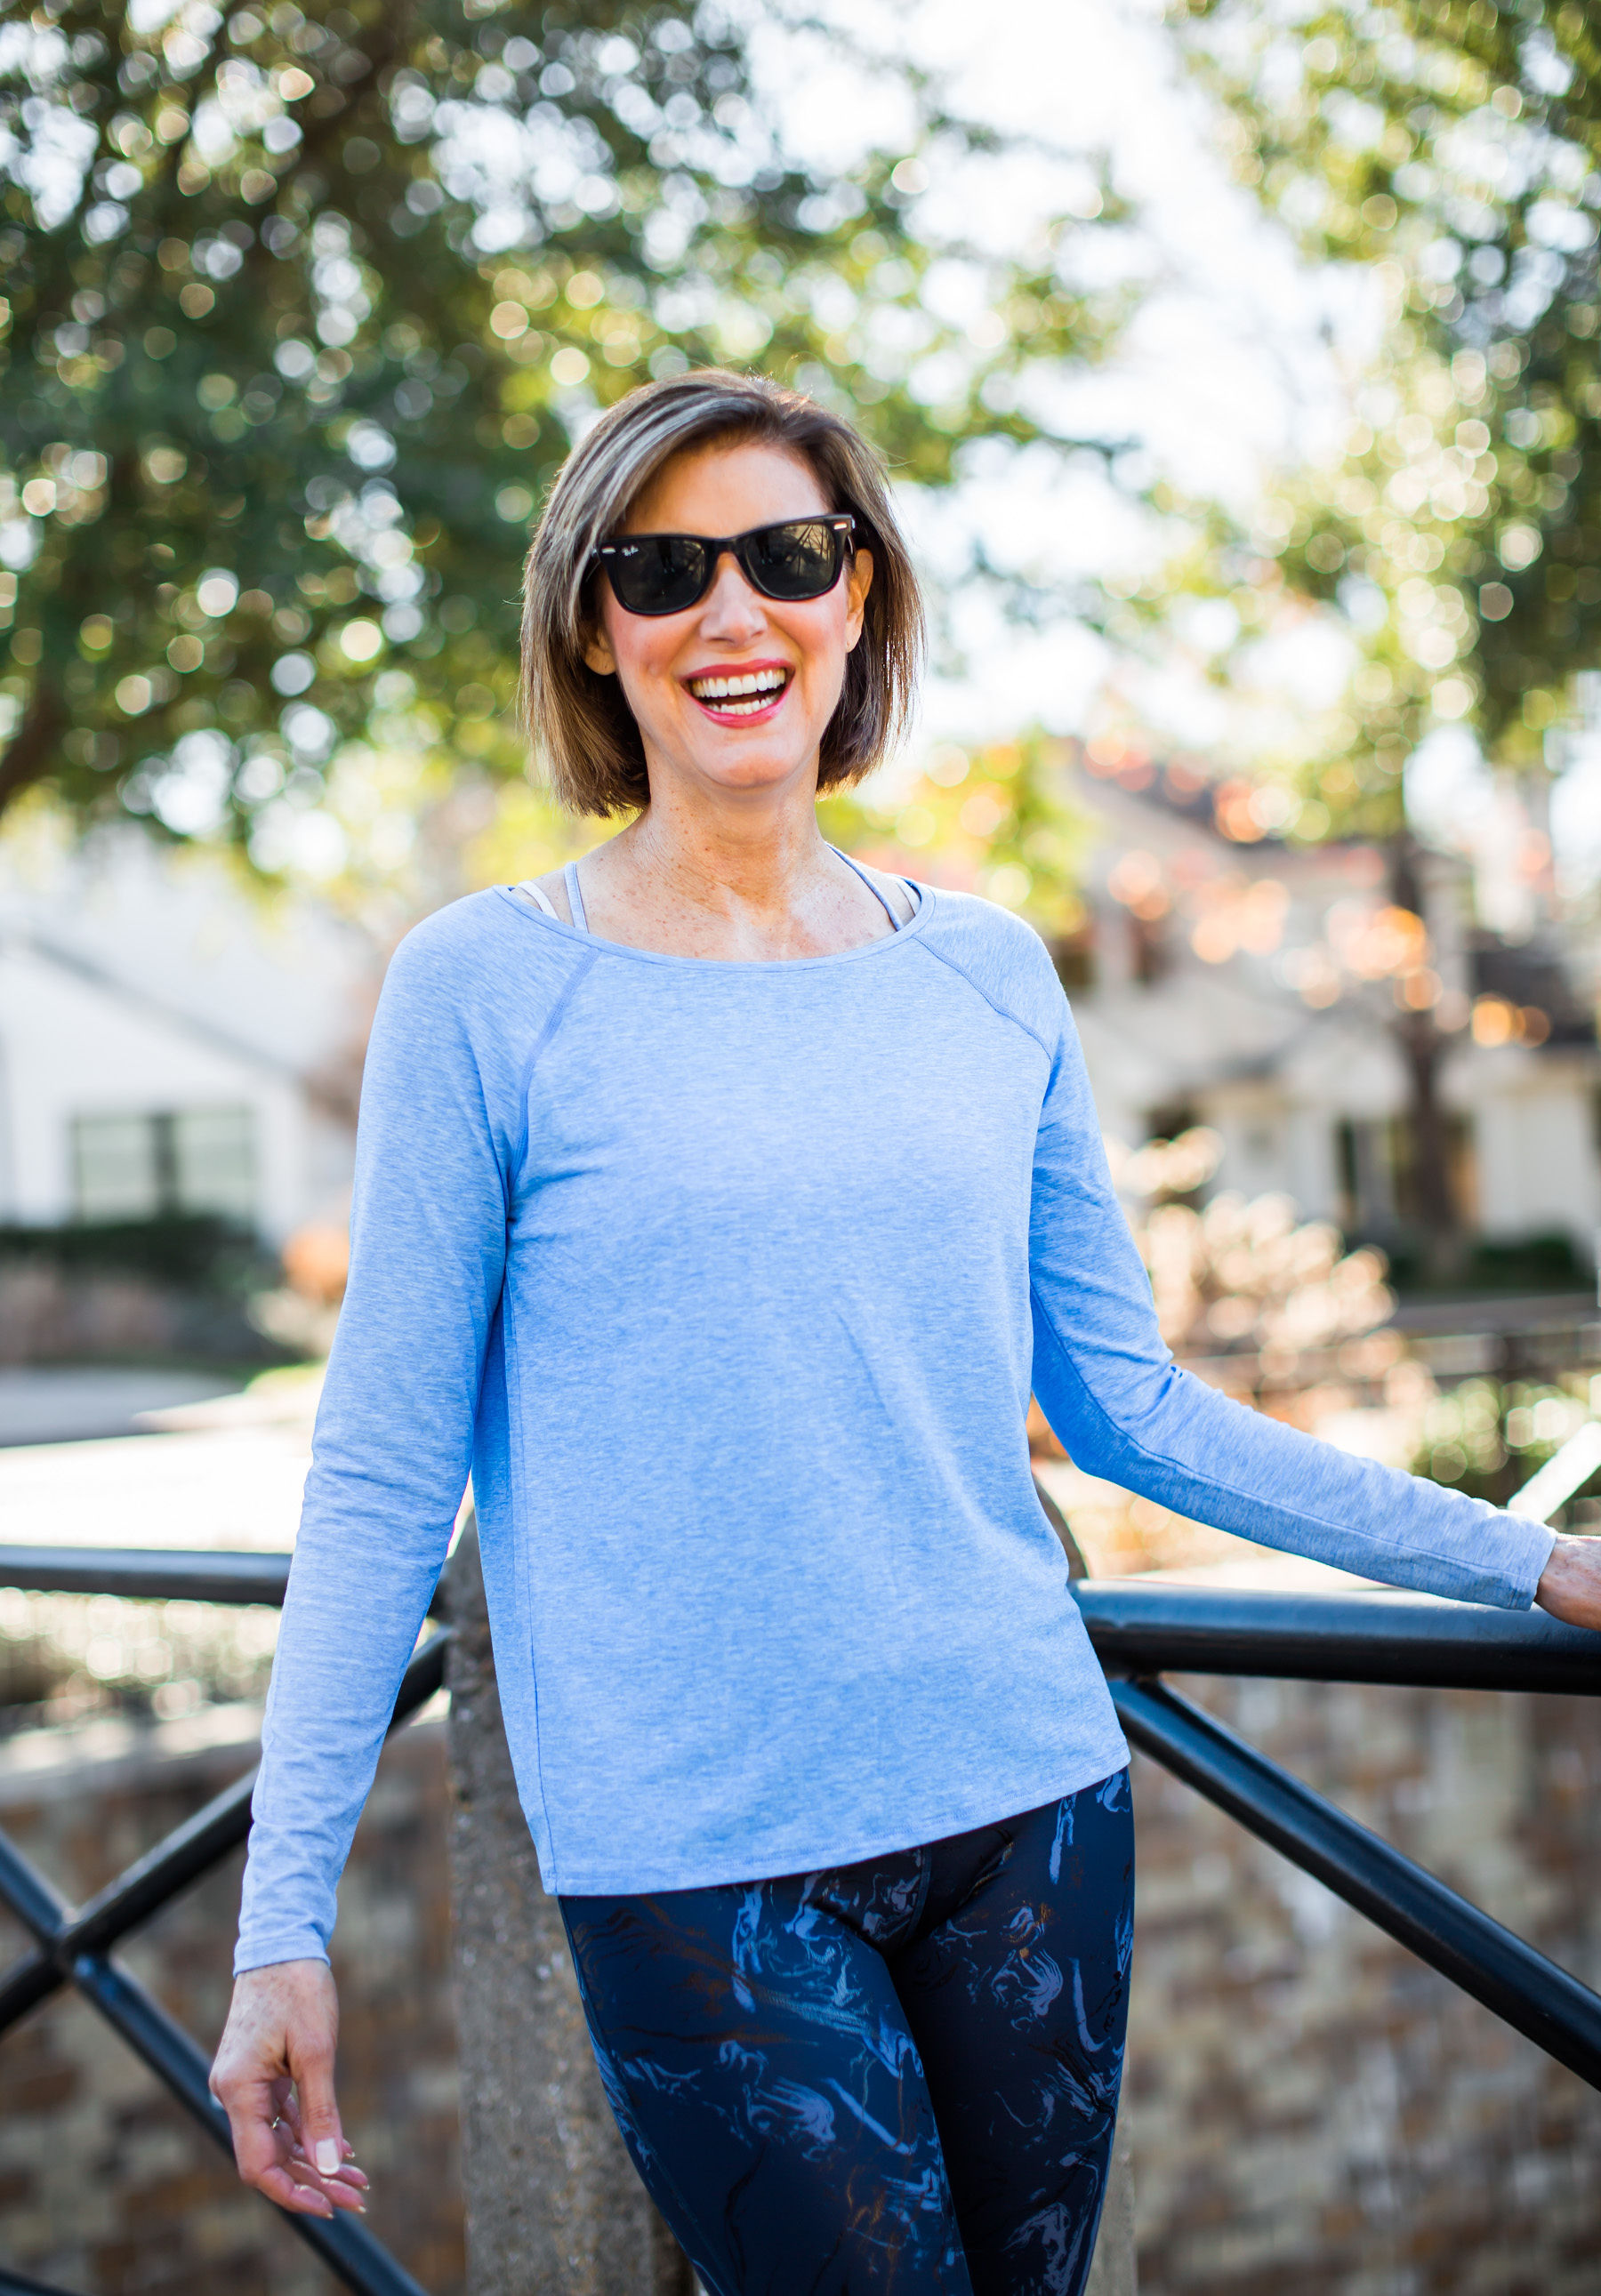 Gap is great for well priced active wear